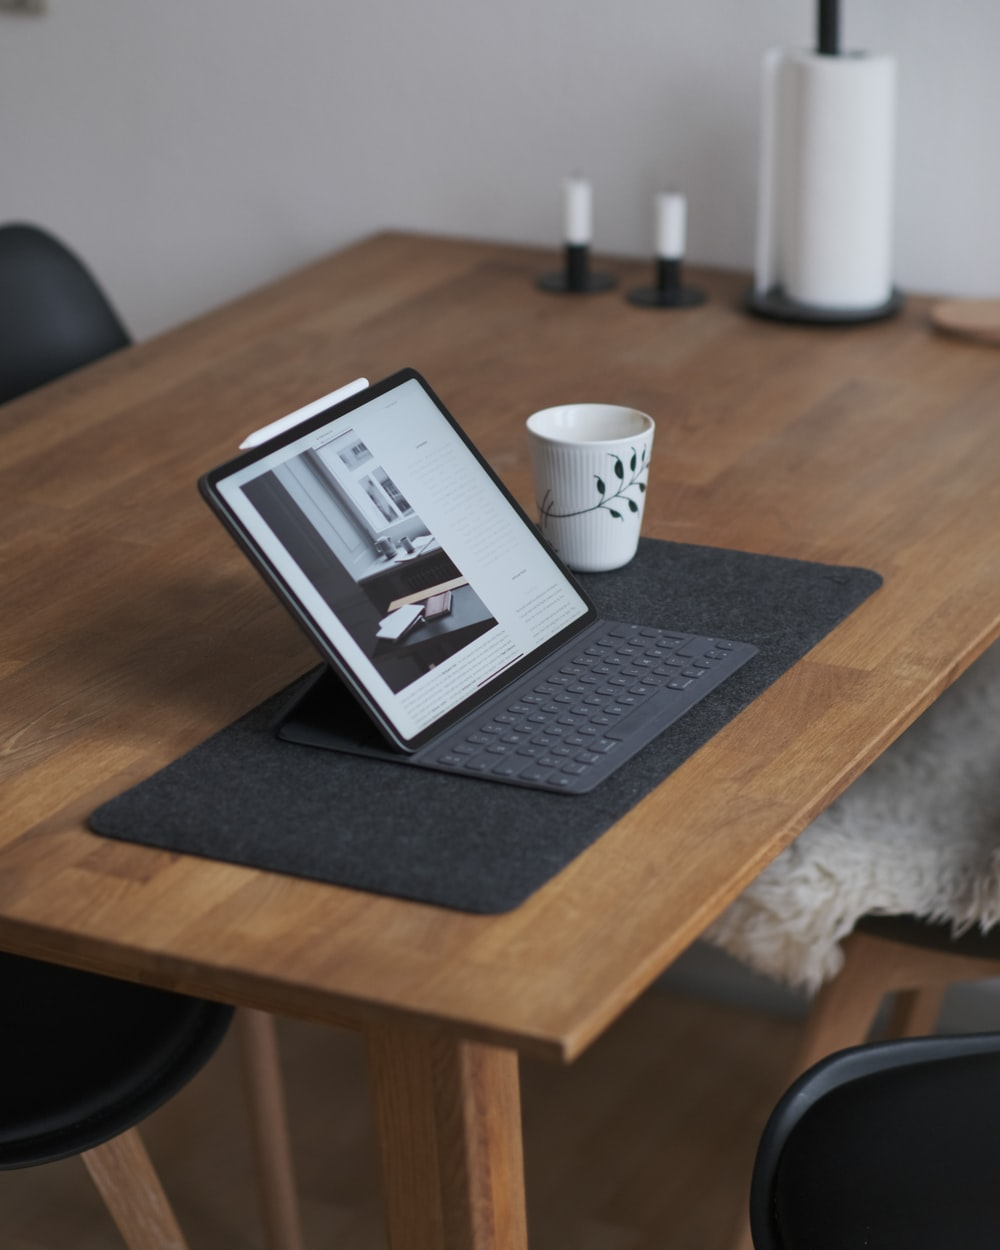 black tablet computer on brown wooden table